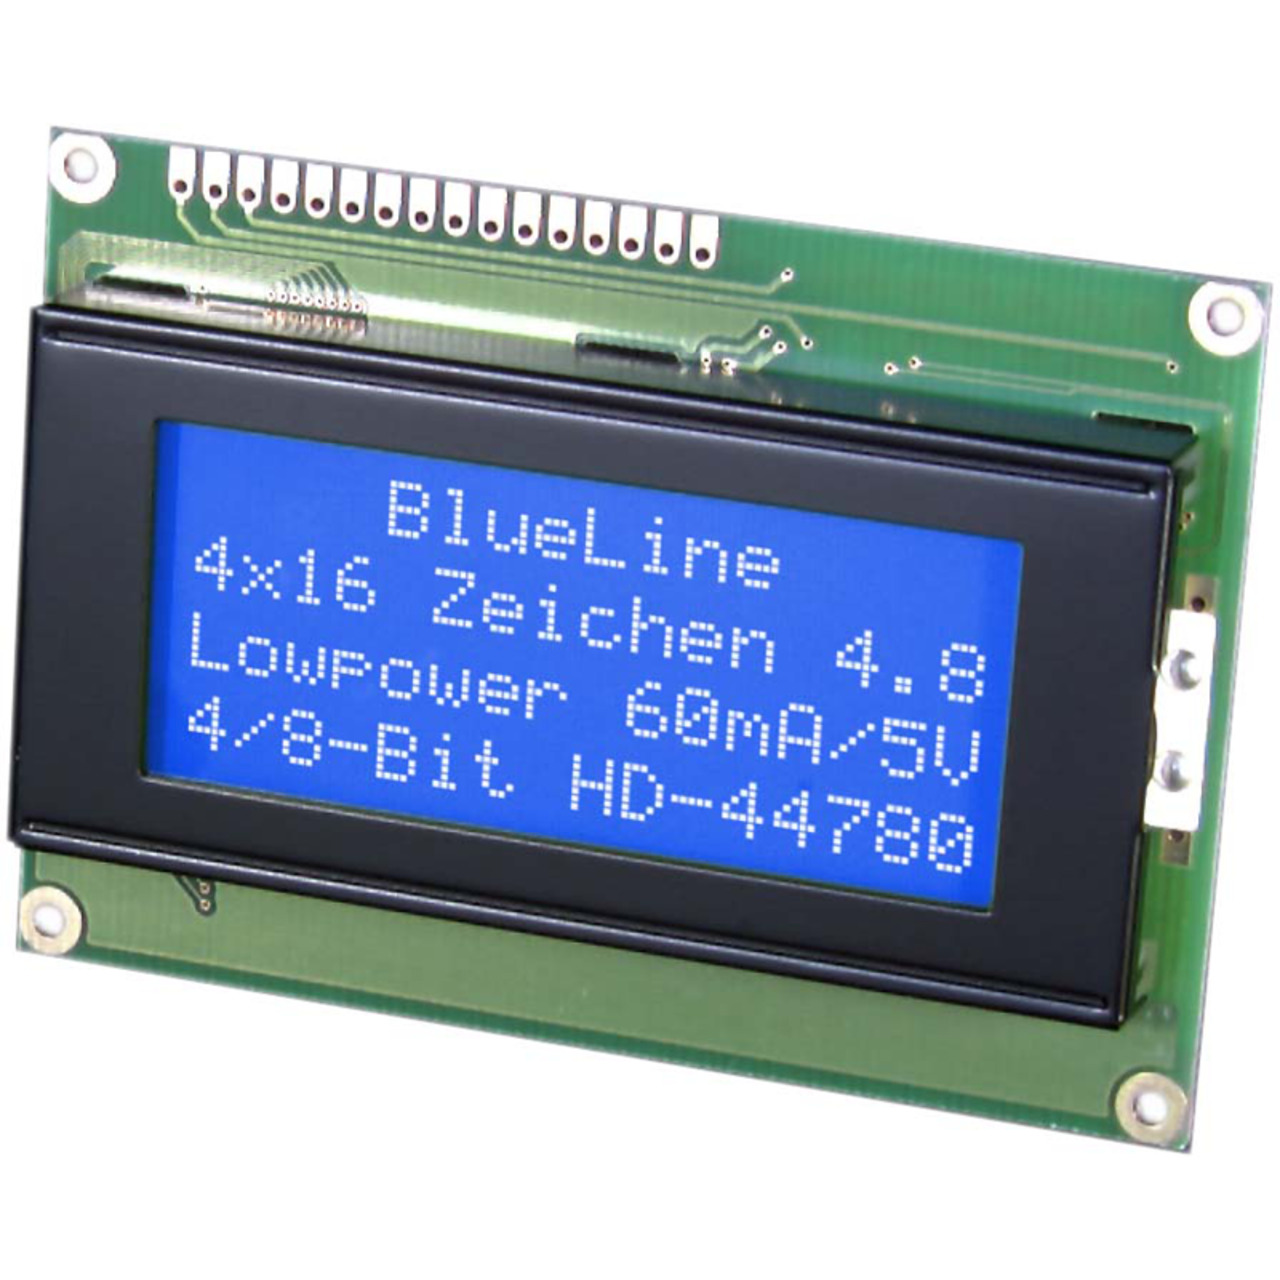 Electronic Assembly LCD-Punktmatrixdisplay EA W164B-NLW 4-75 mm 4x16